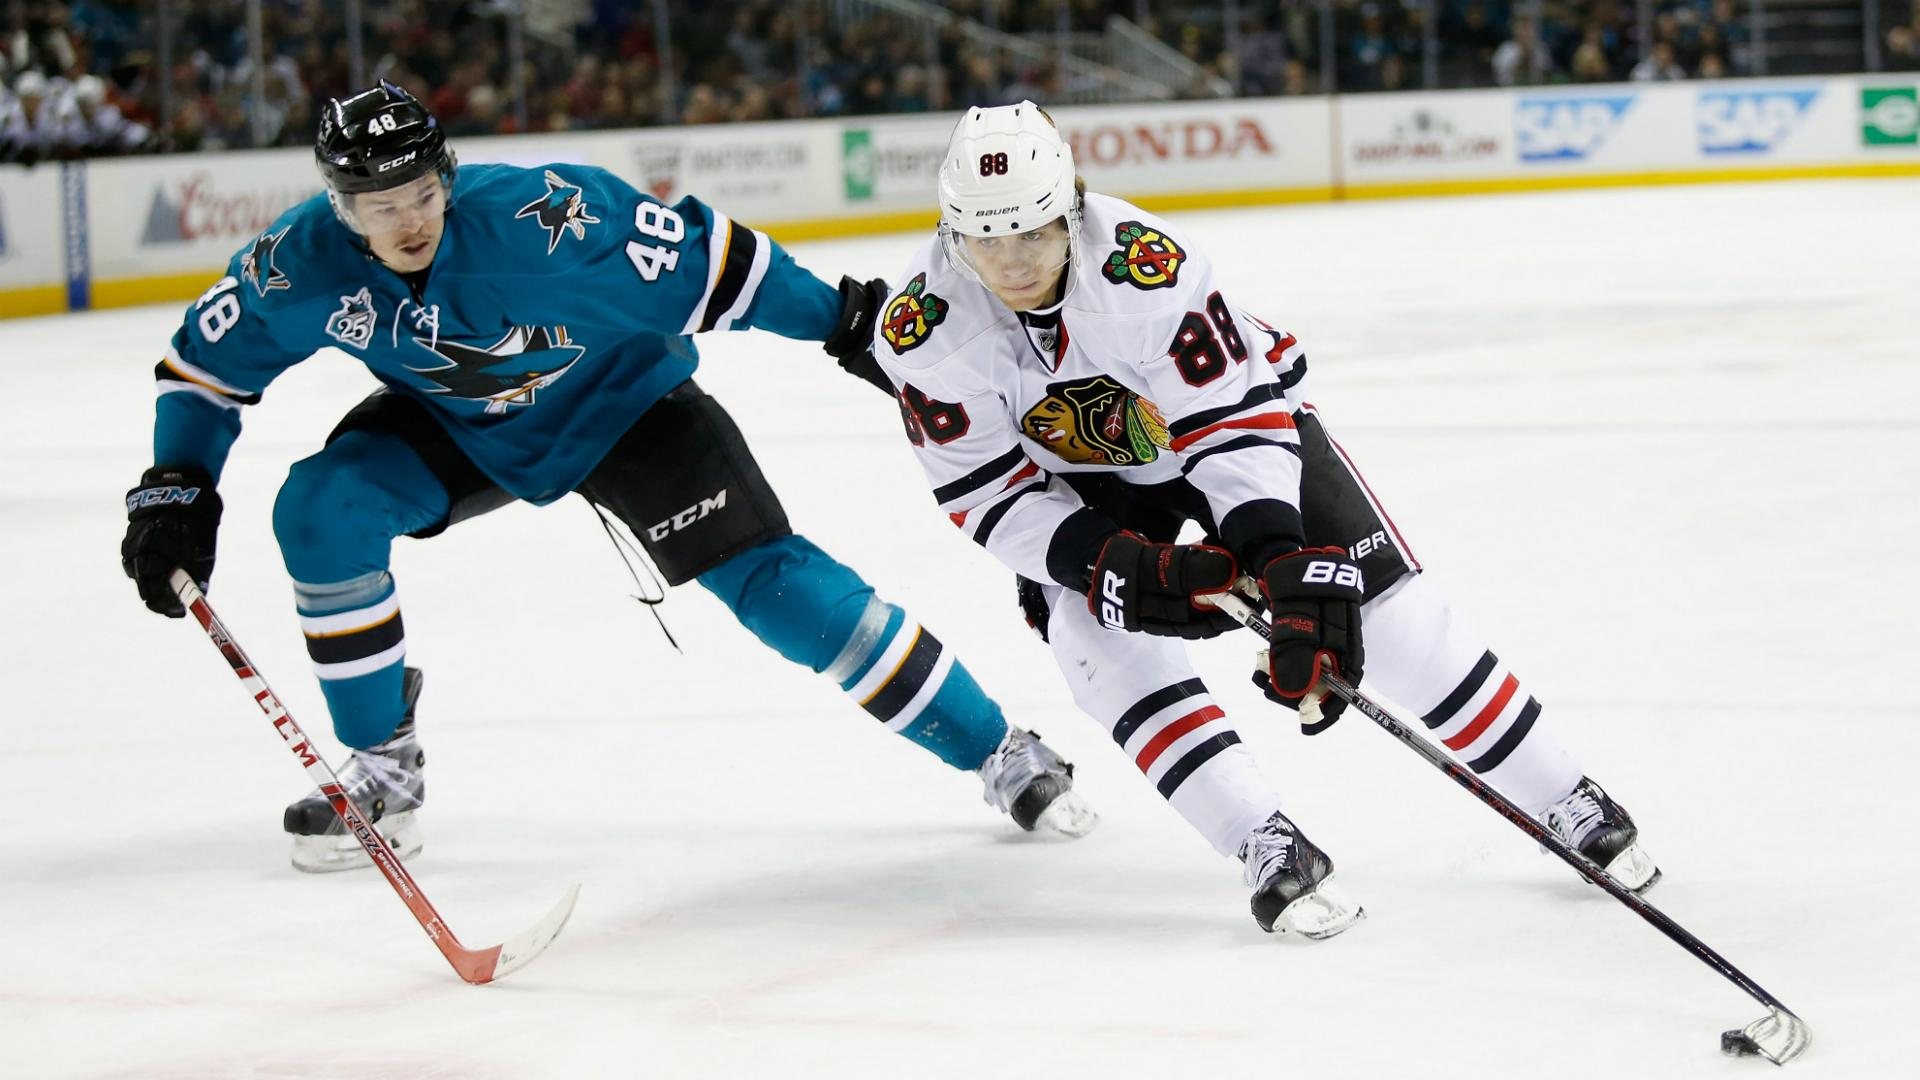 Blackhawks end Sharks streak, Canadiens crush Rangers